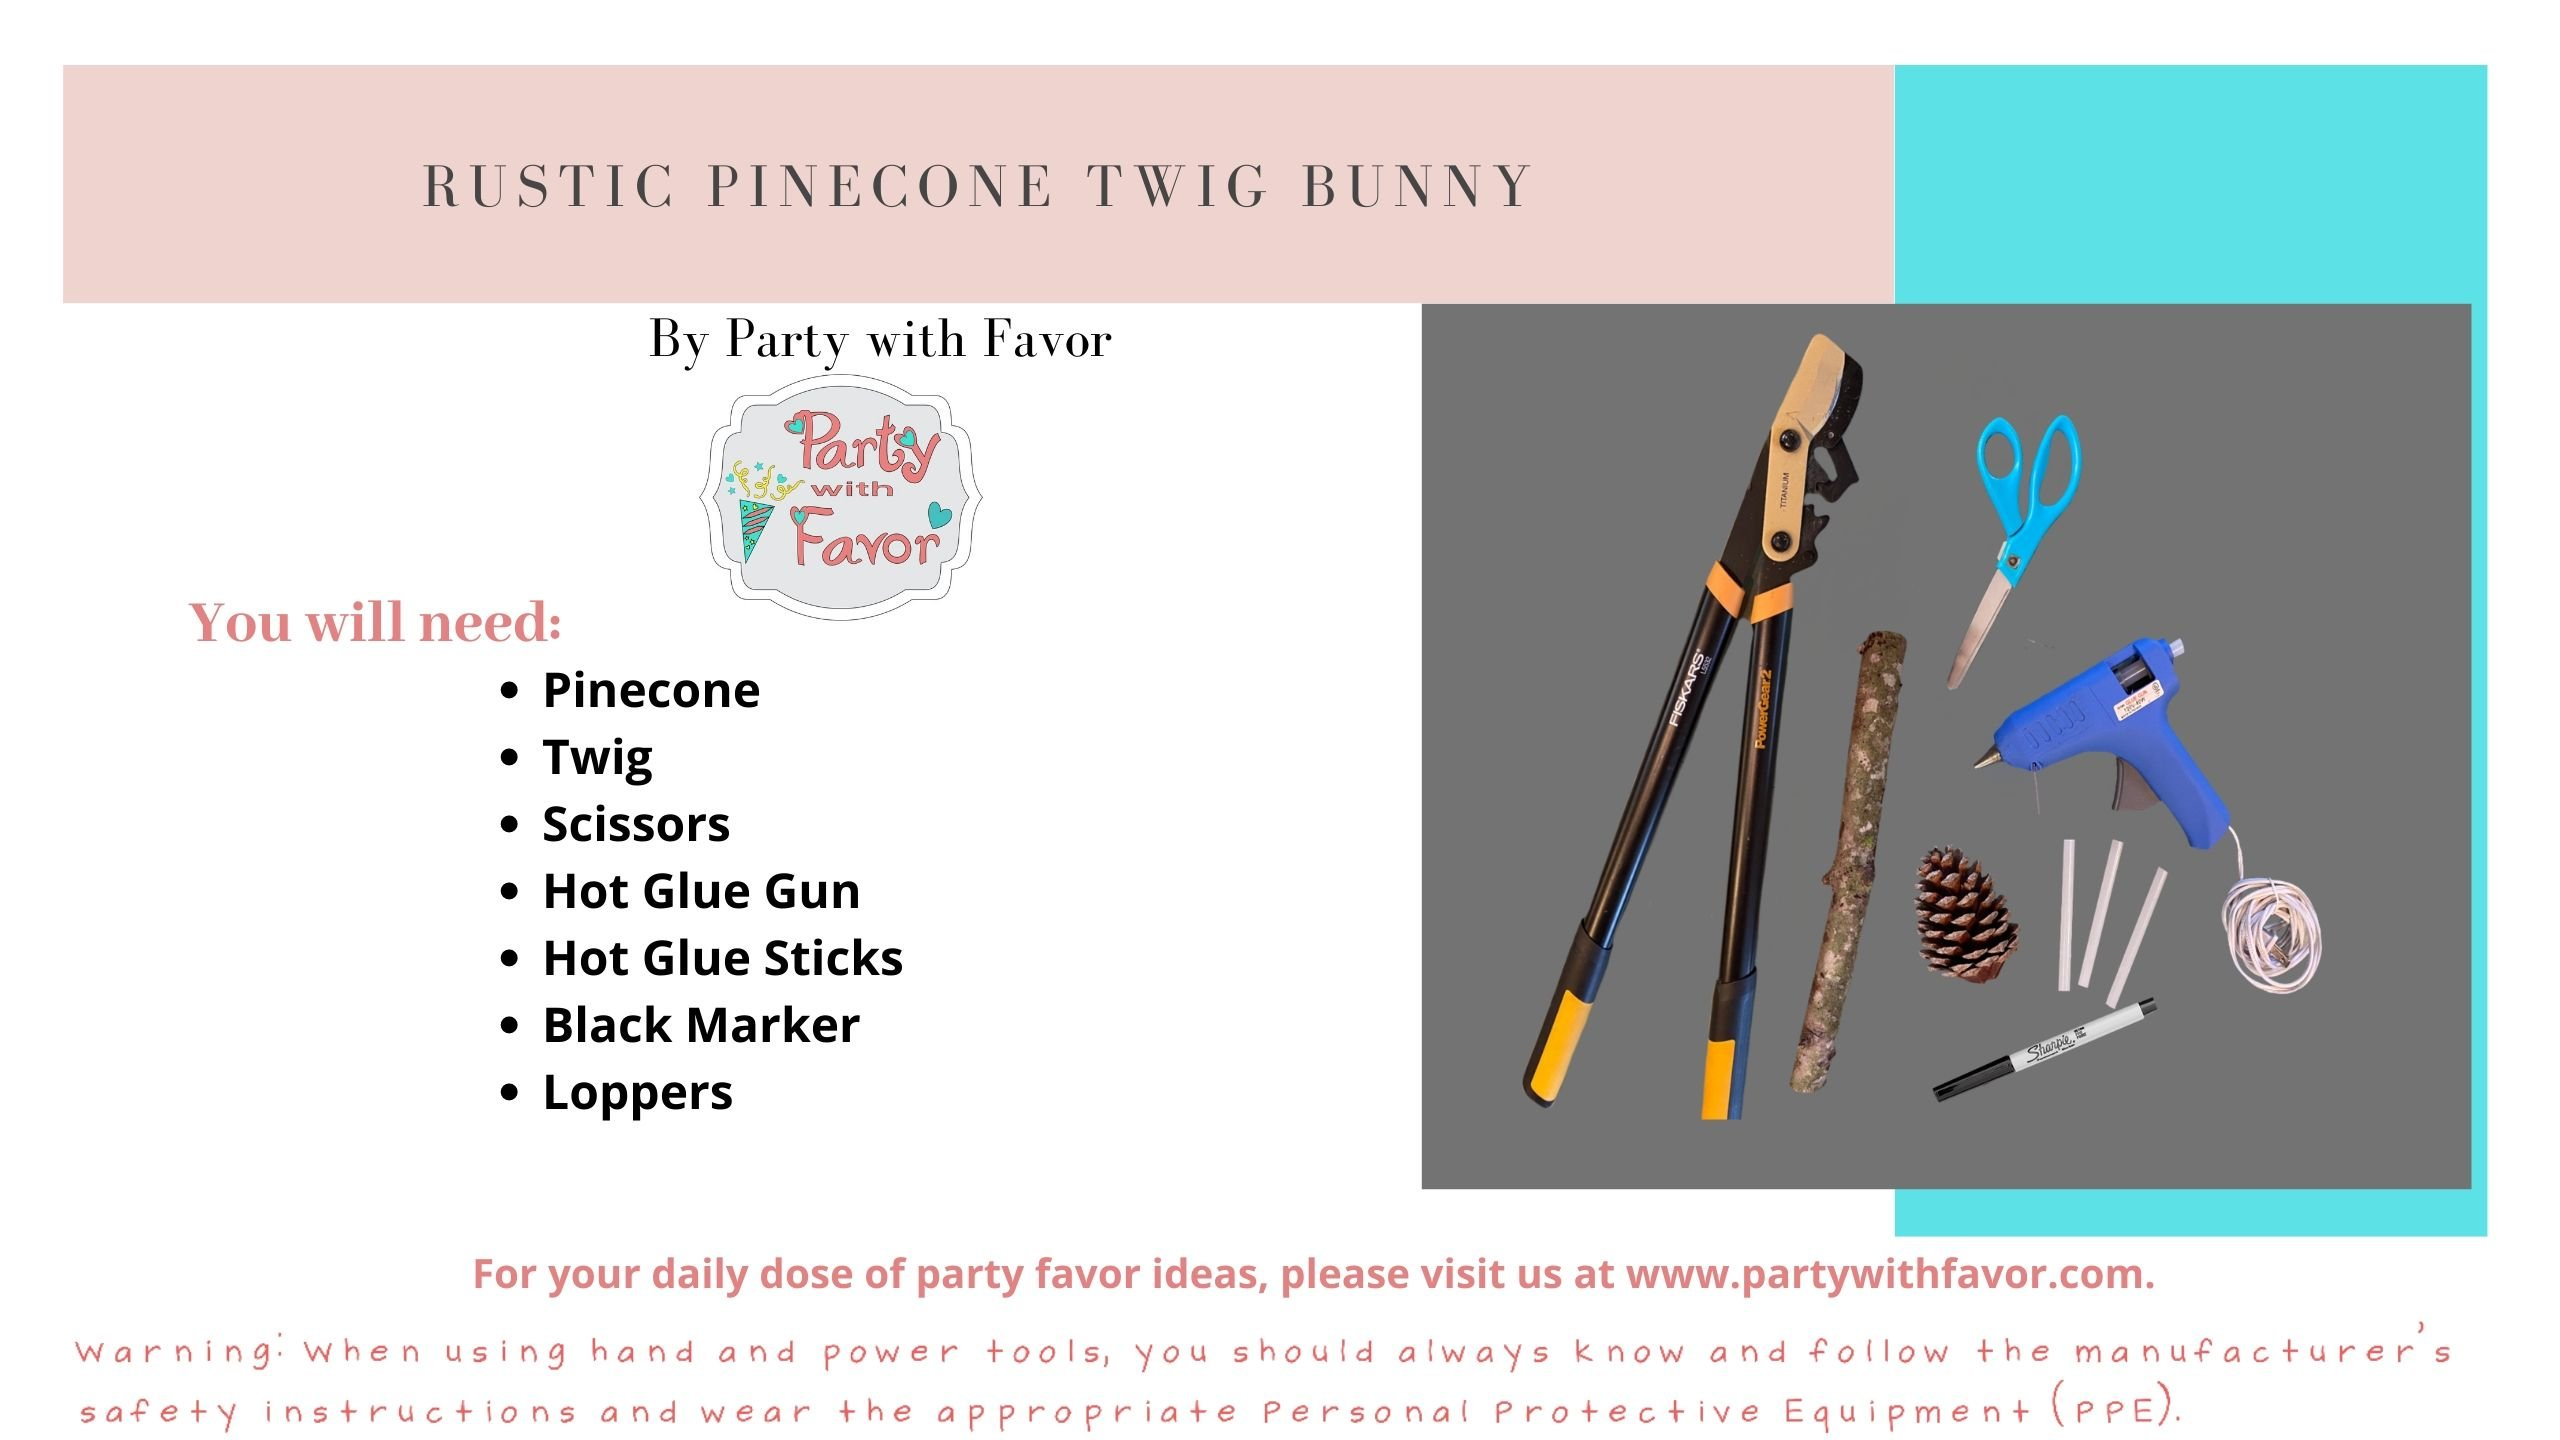 Ristic Pinecone Twig Bunny (Ingredients)